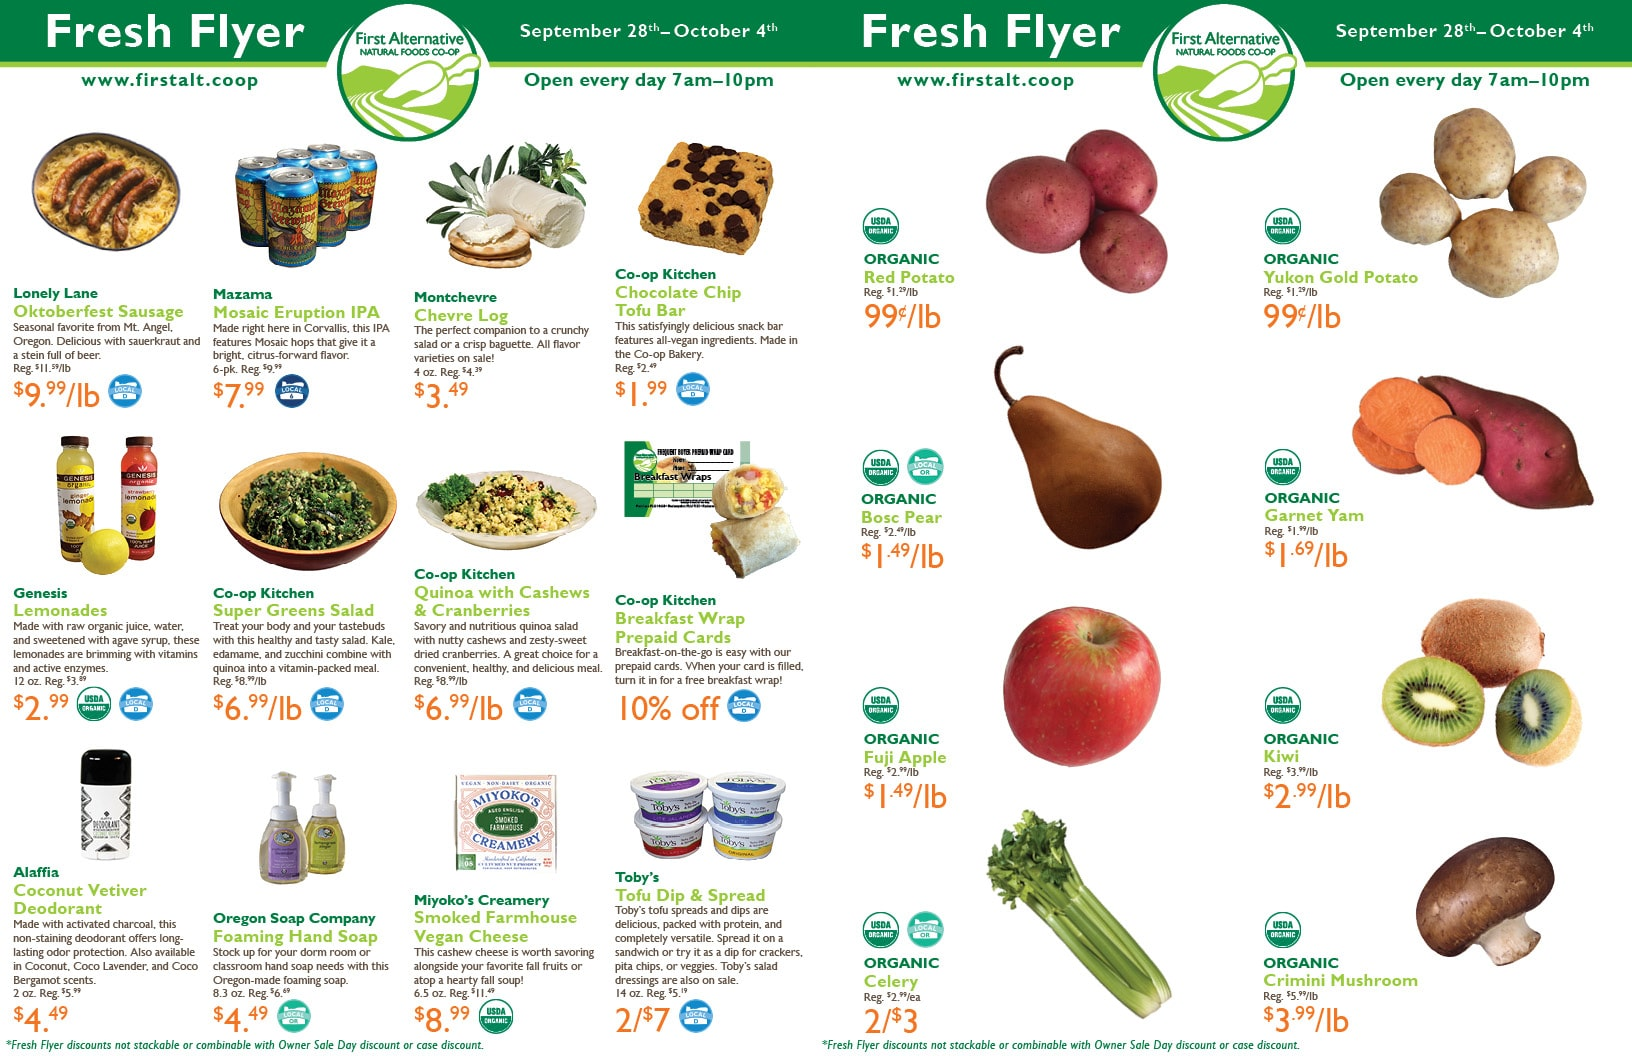 first alternative fresh flyer sept 28-oct-4